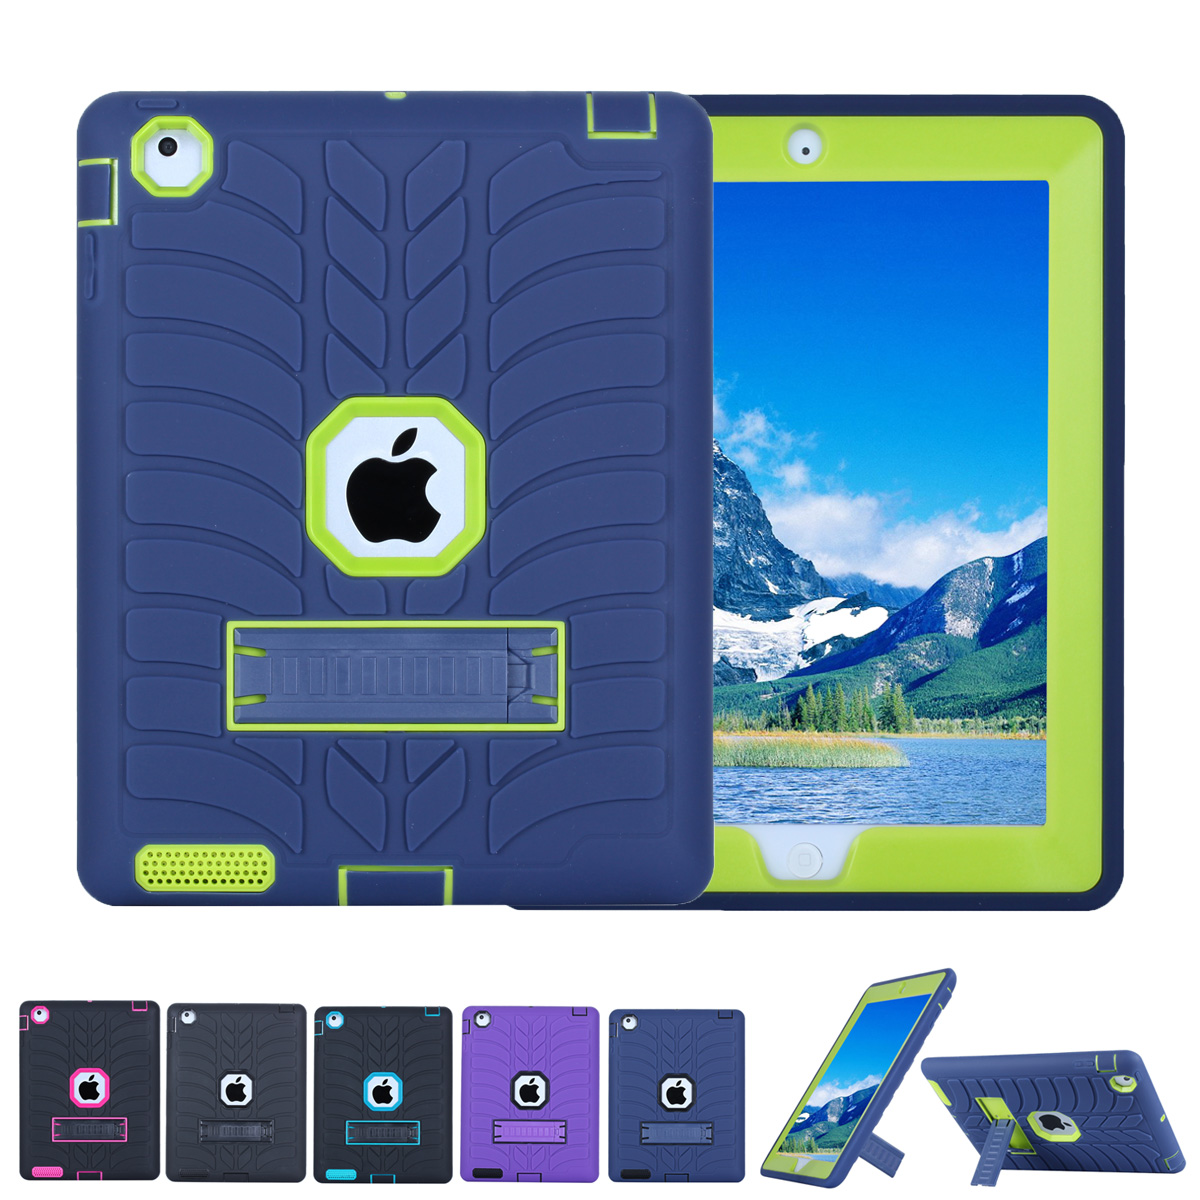 Shockproof Case for Apple iPad 4/iPad 3/iPad 2 Kids Friendly Anti-Scratch Anti-Slip Armor Protective Hard Back Tablet Case Cover